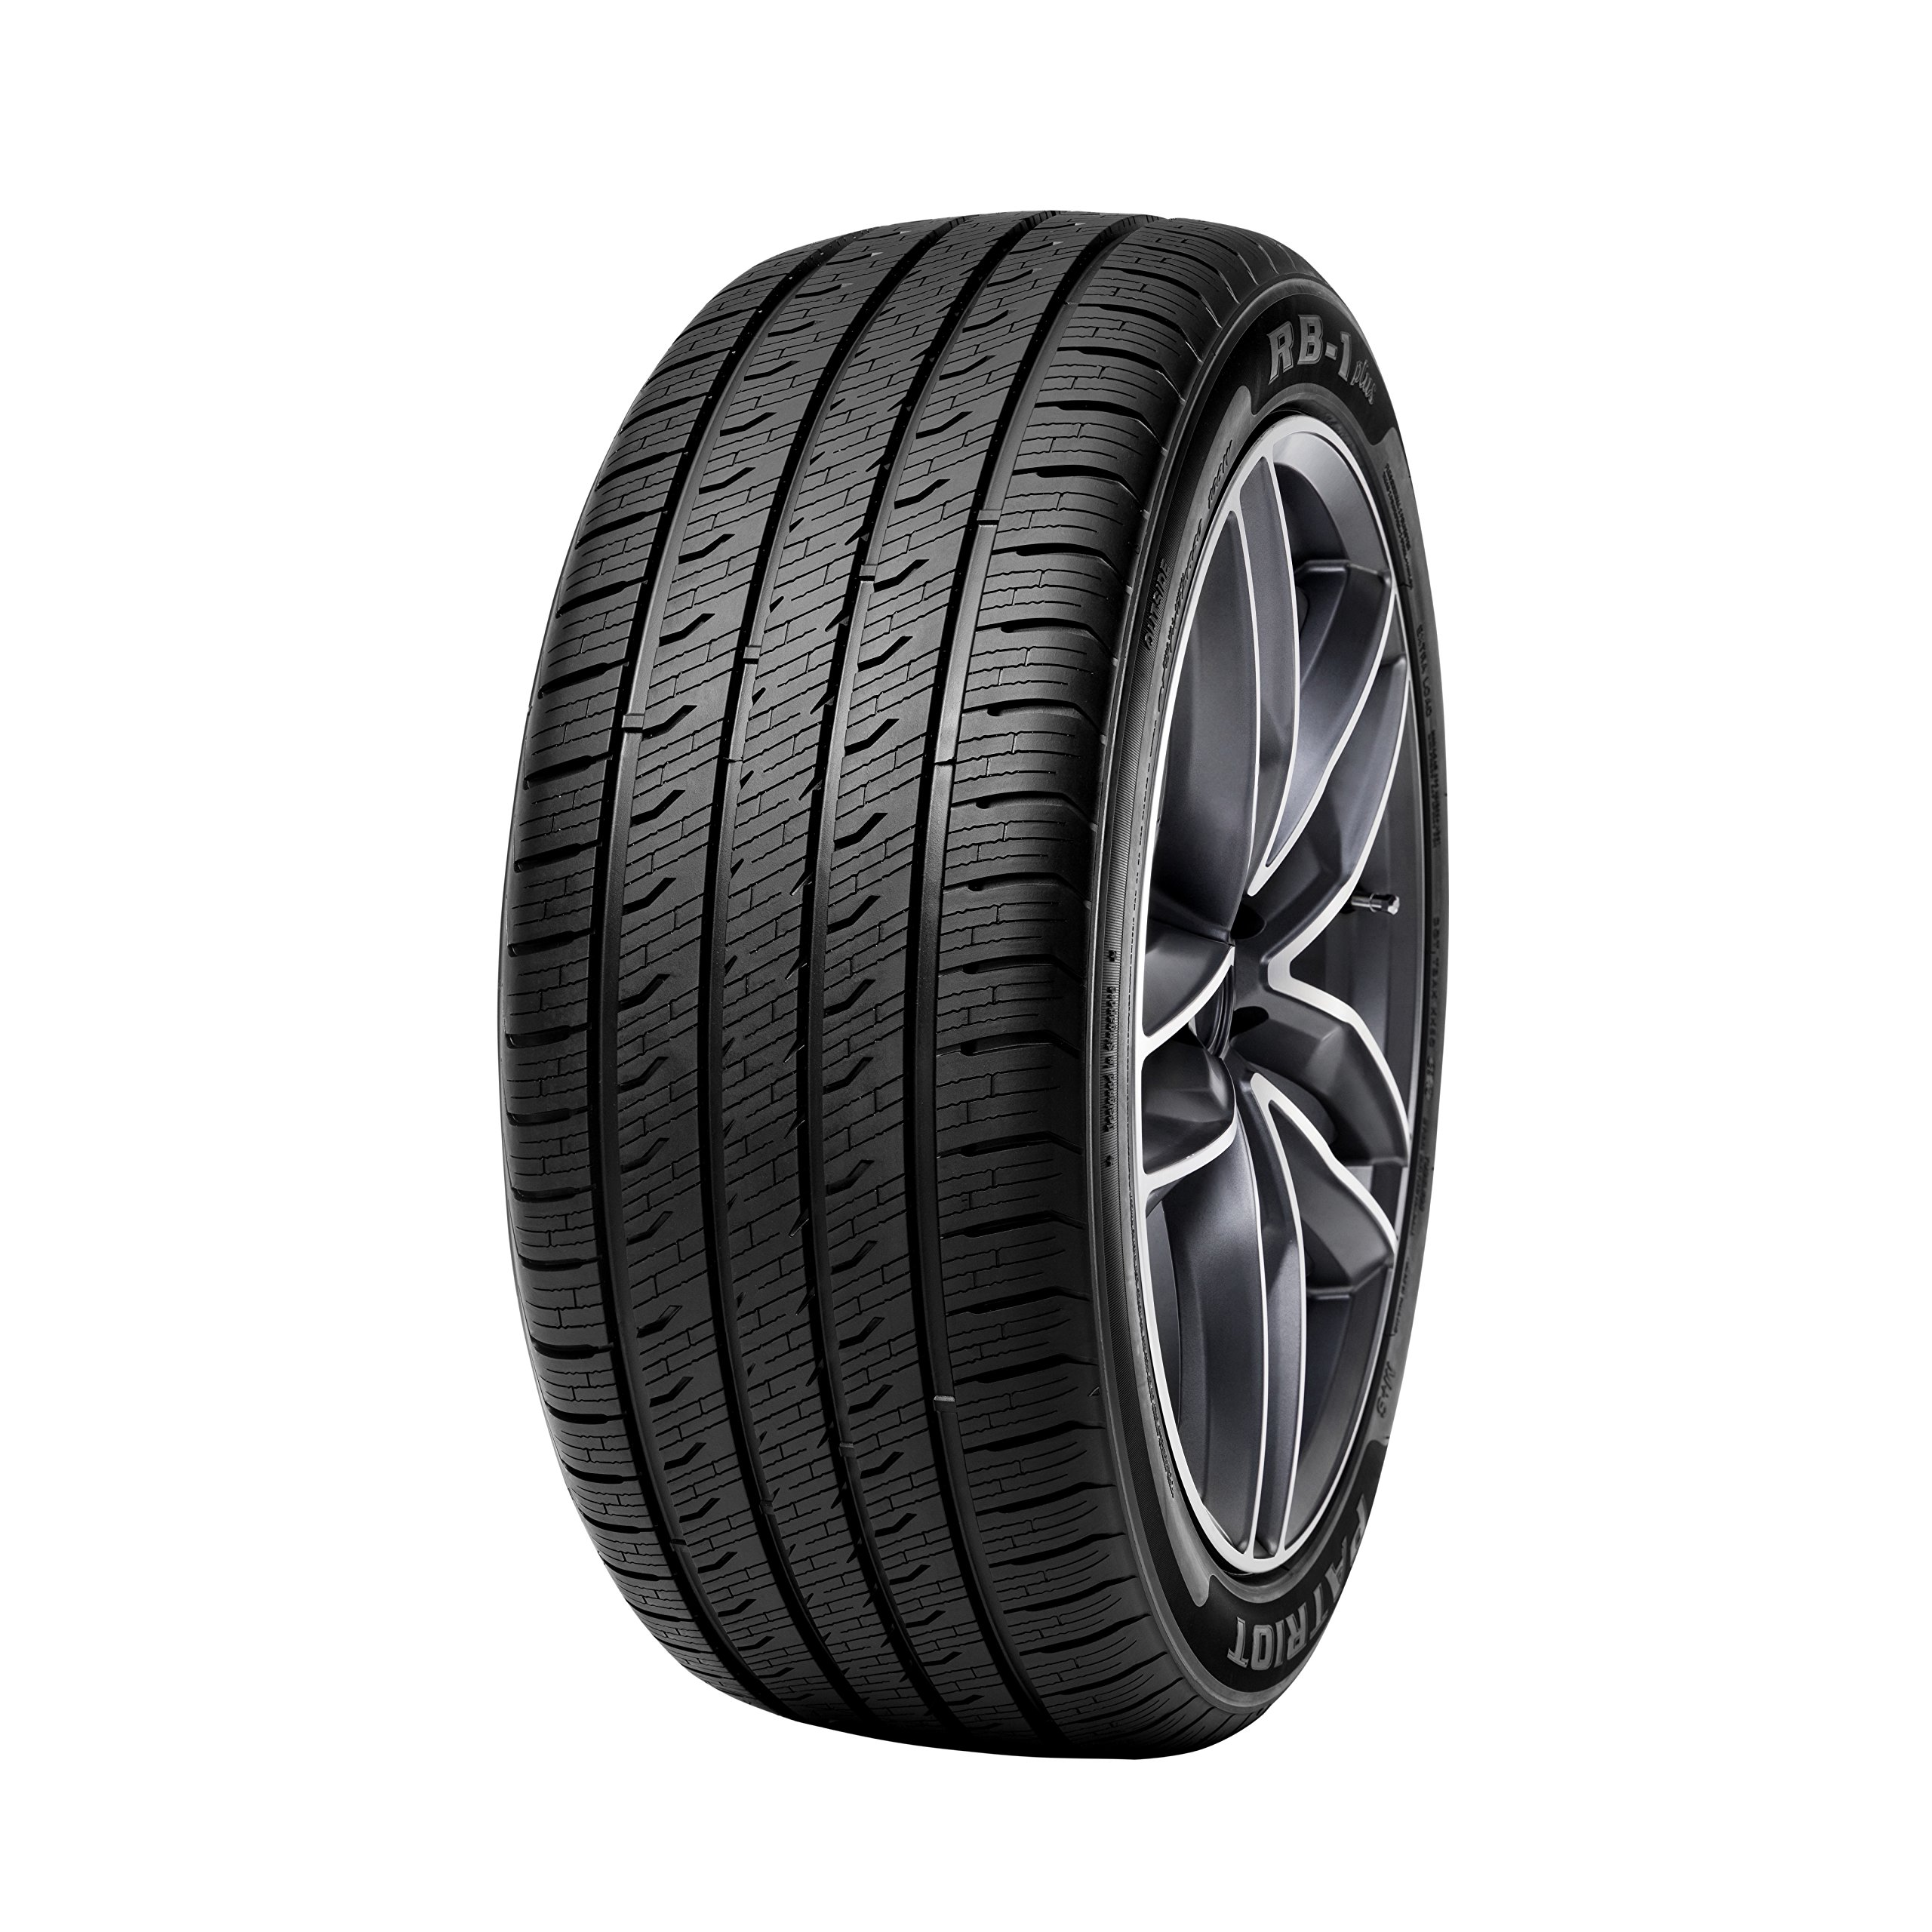 Patriot Tires RB-1+ Touring Radial Tire - 245/45ZR20 103W